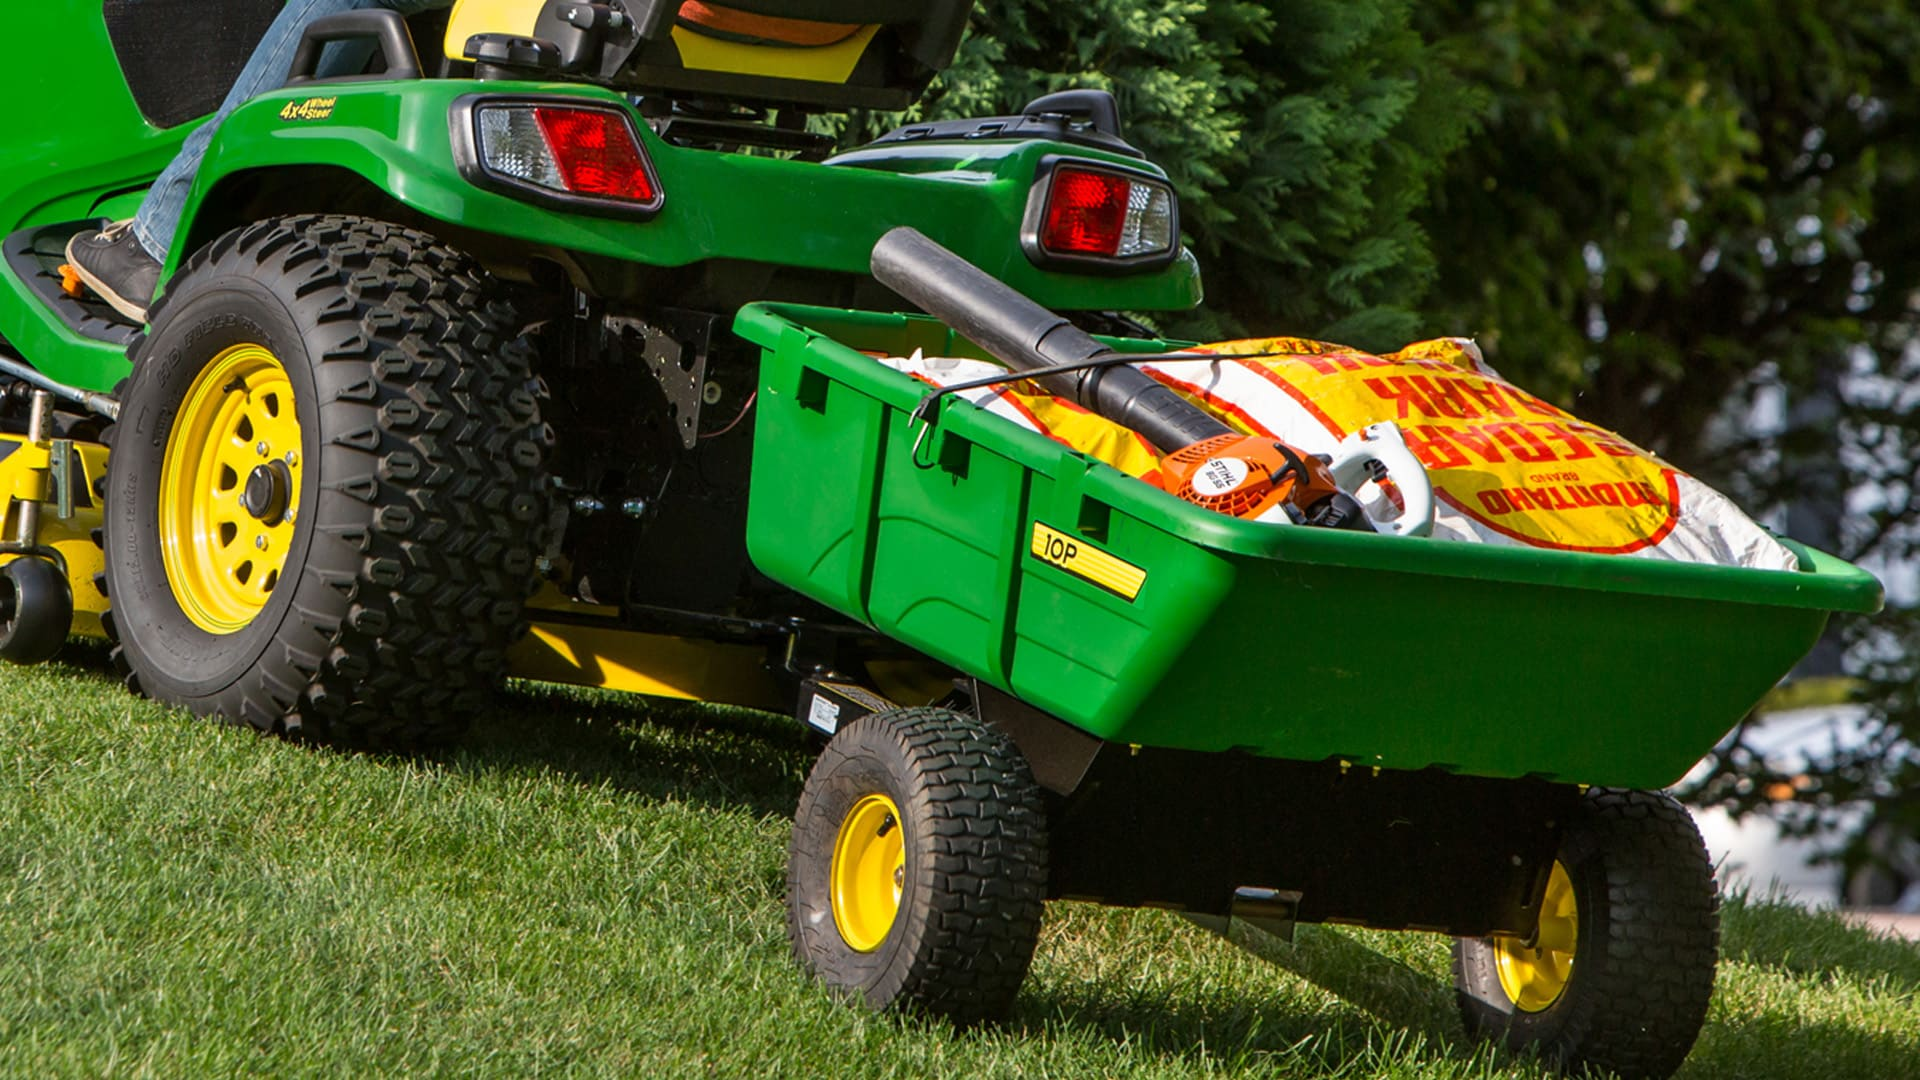 Ride on mower cart attachment for convenient yard work.